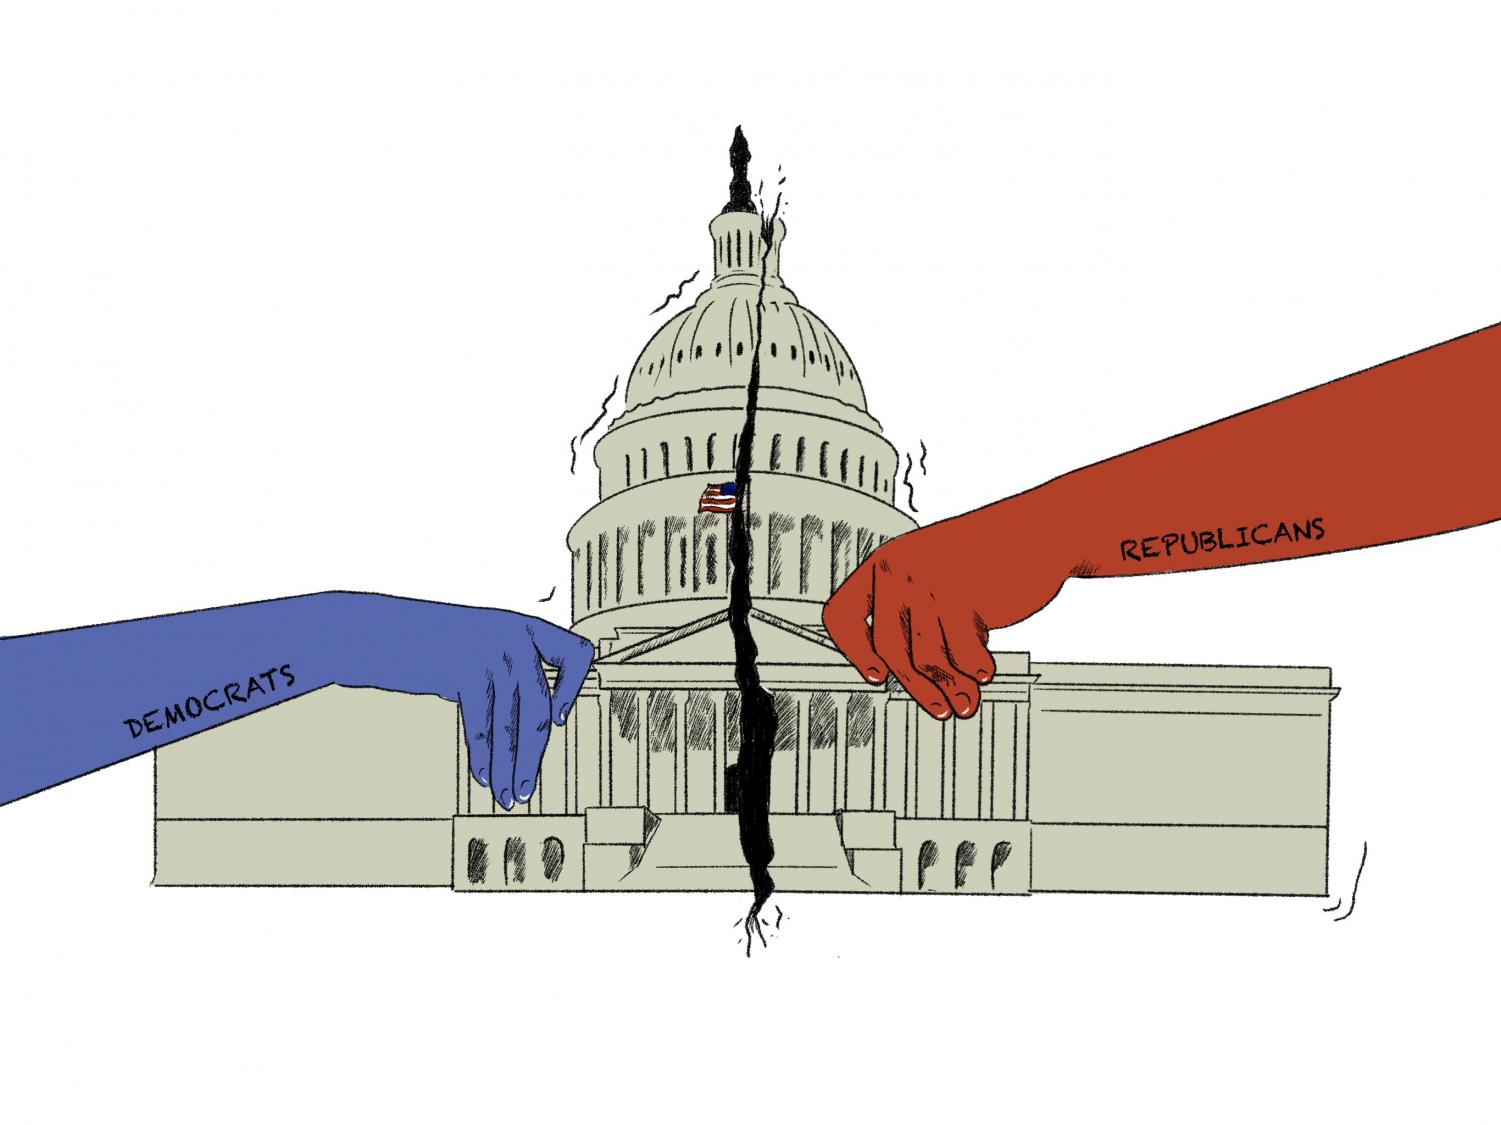 United States division sparked by both sides of the political spectrum